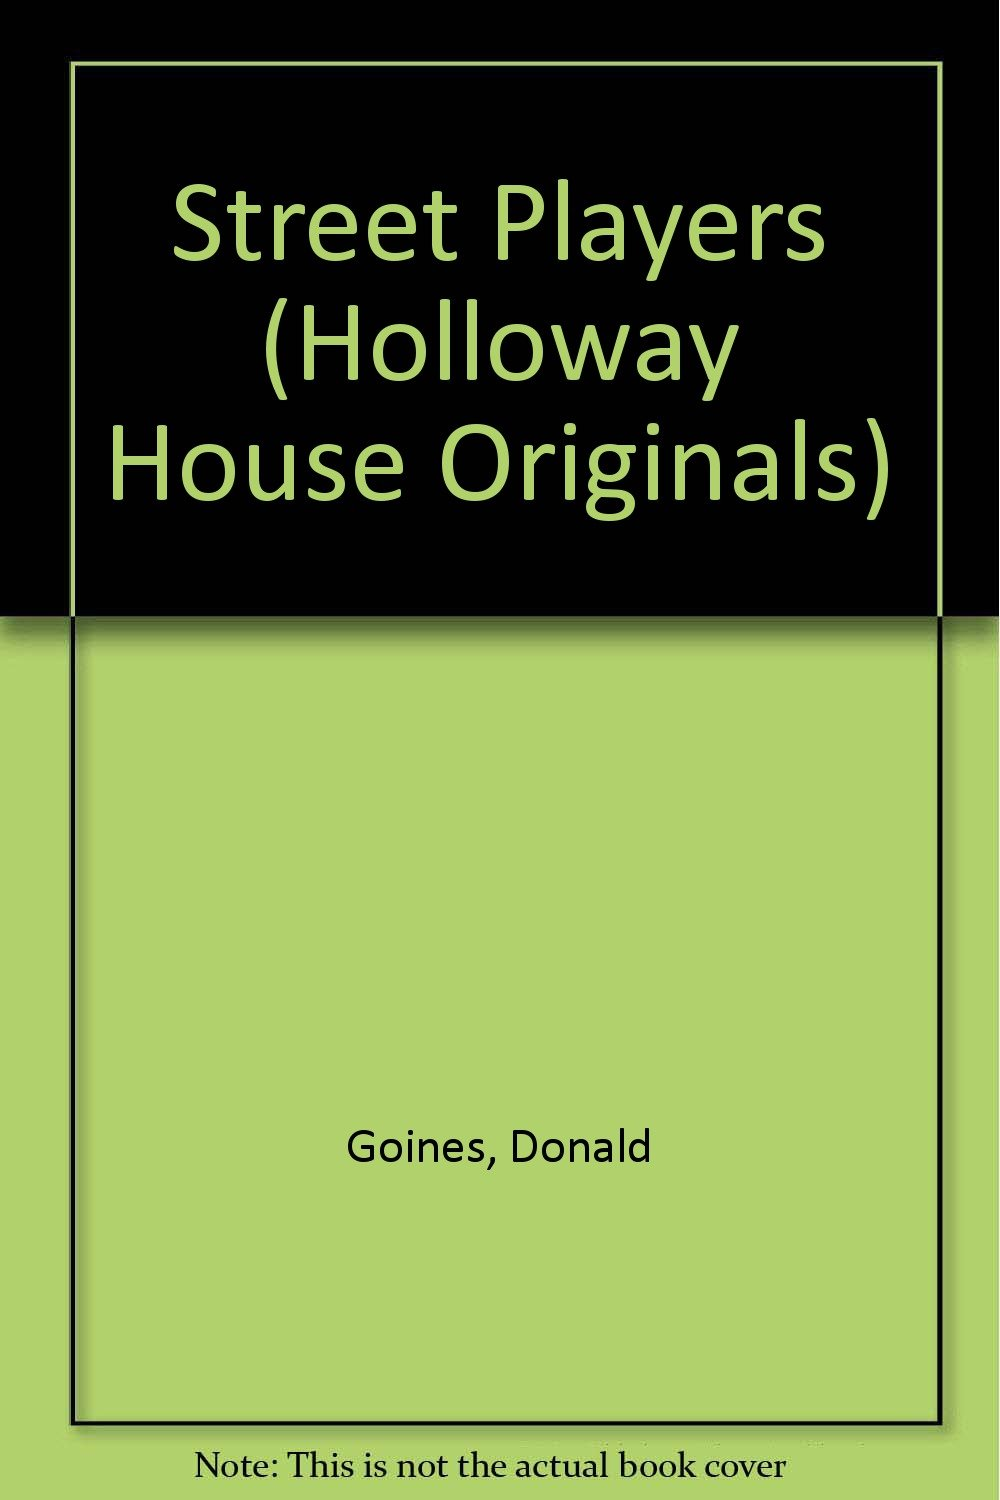 Buy Street Players (Holloway House Originals) Book Online at Low Prices in  India | Street Players (Holloway House Originals) Reviews & Ratings -  Amazon.in